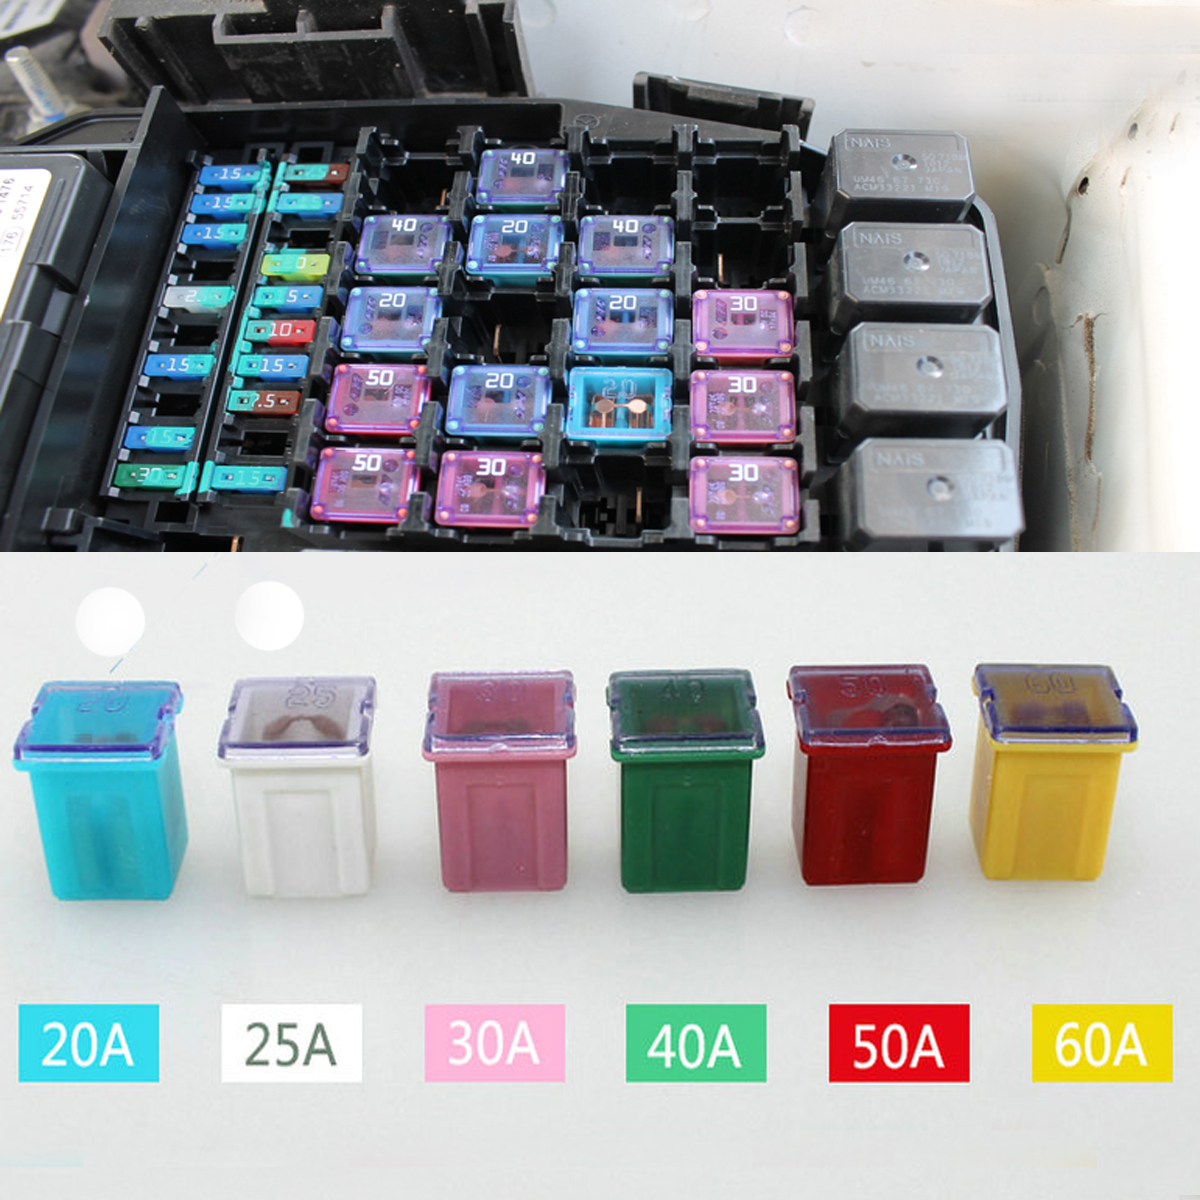 60pcs Japanese Auto Fuse 20  25  30  40  50  60a Pal Female Fuse Box Square Insert Car Fuse Box For